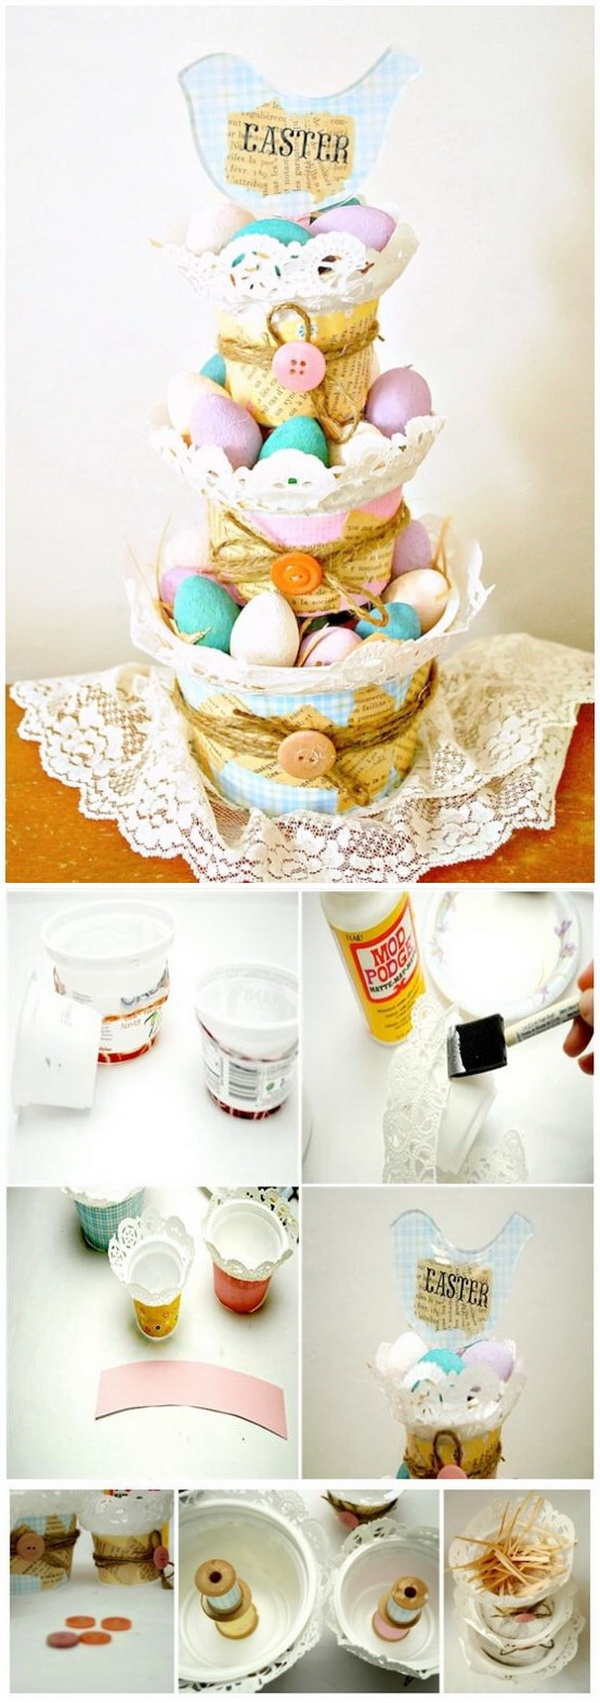 DIY Easter Decoration Ideas: Tiered Basket Easter Centerpiece.